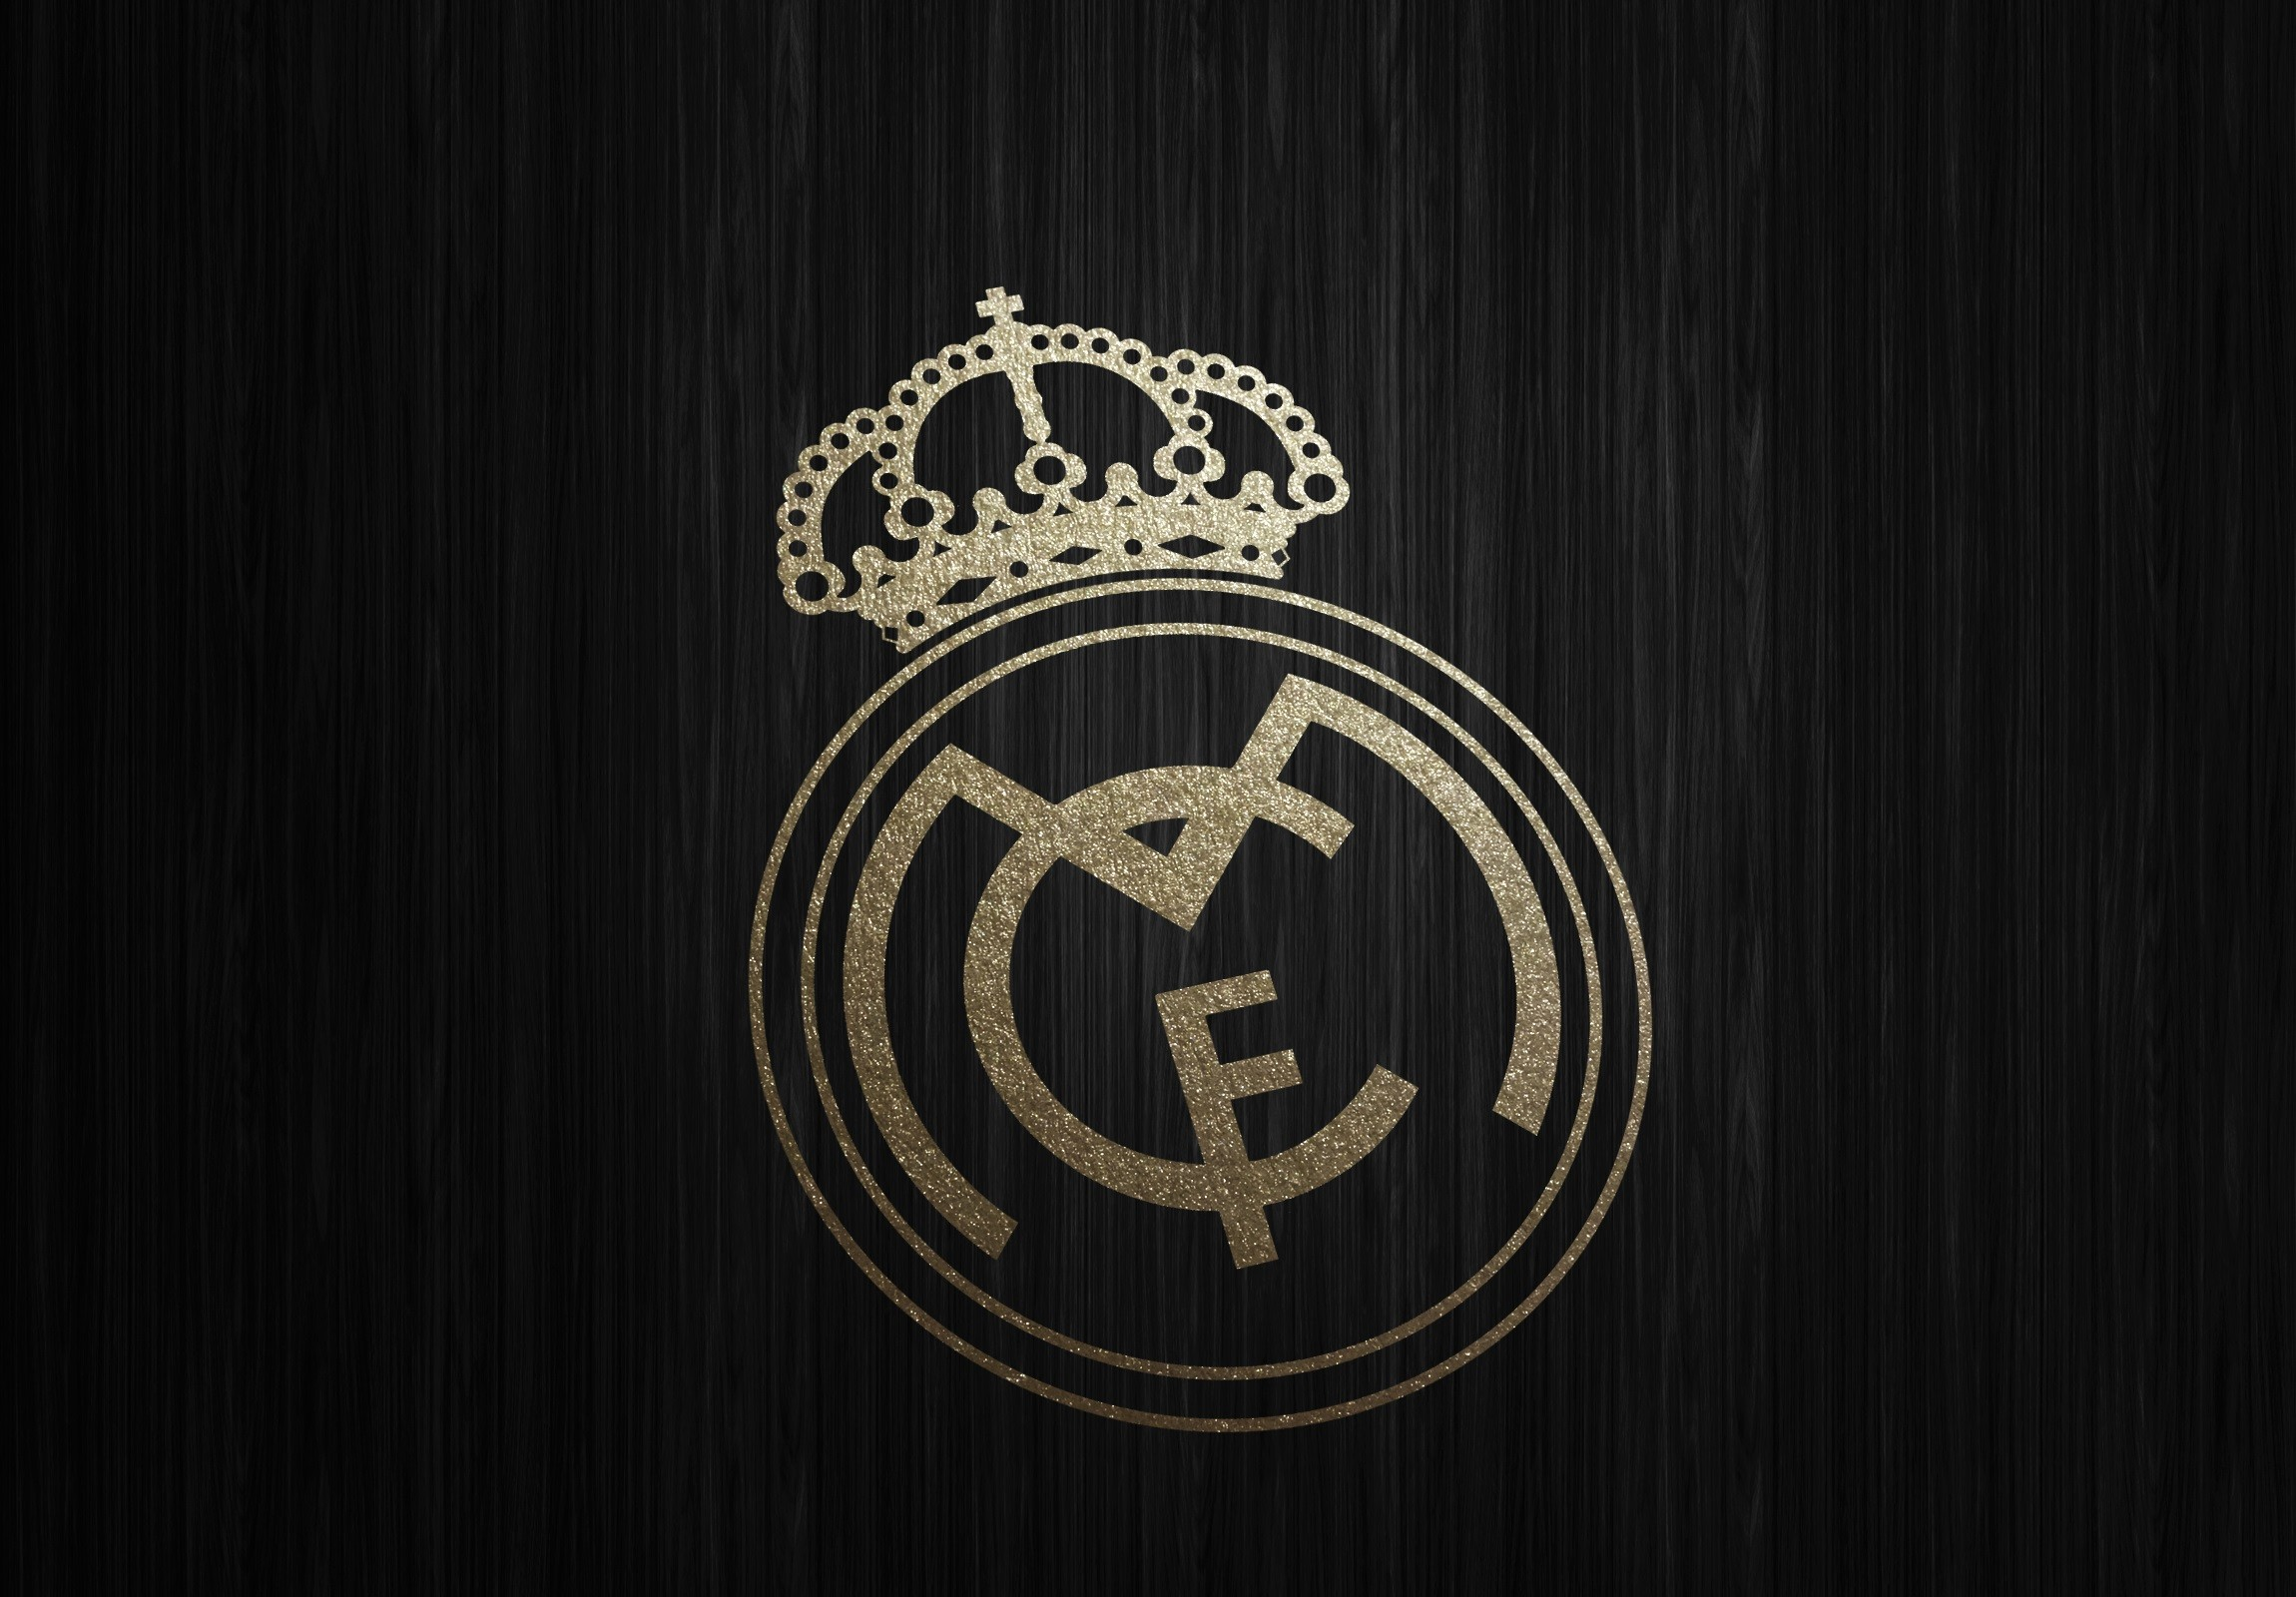 2300x1600 Real, Club, De, Fútbol, Real, Madrid, Wallpaper